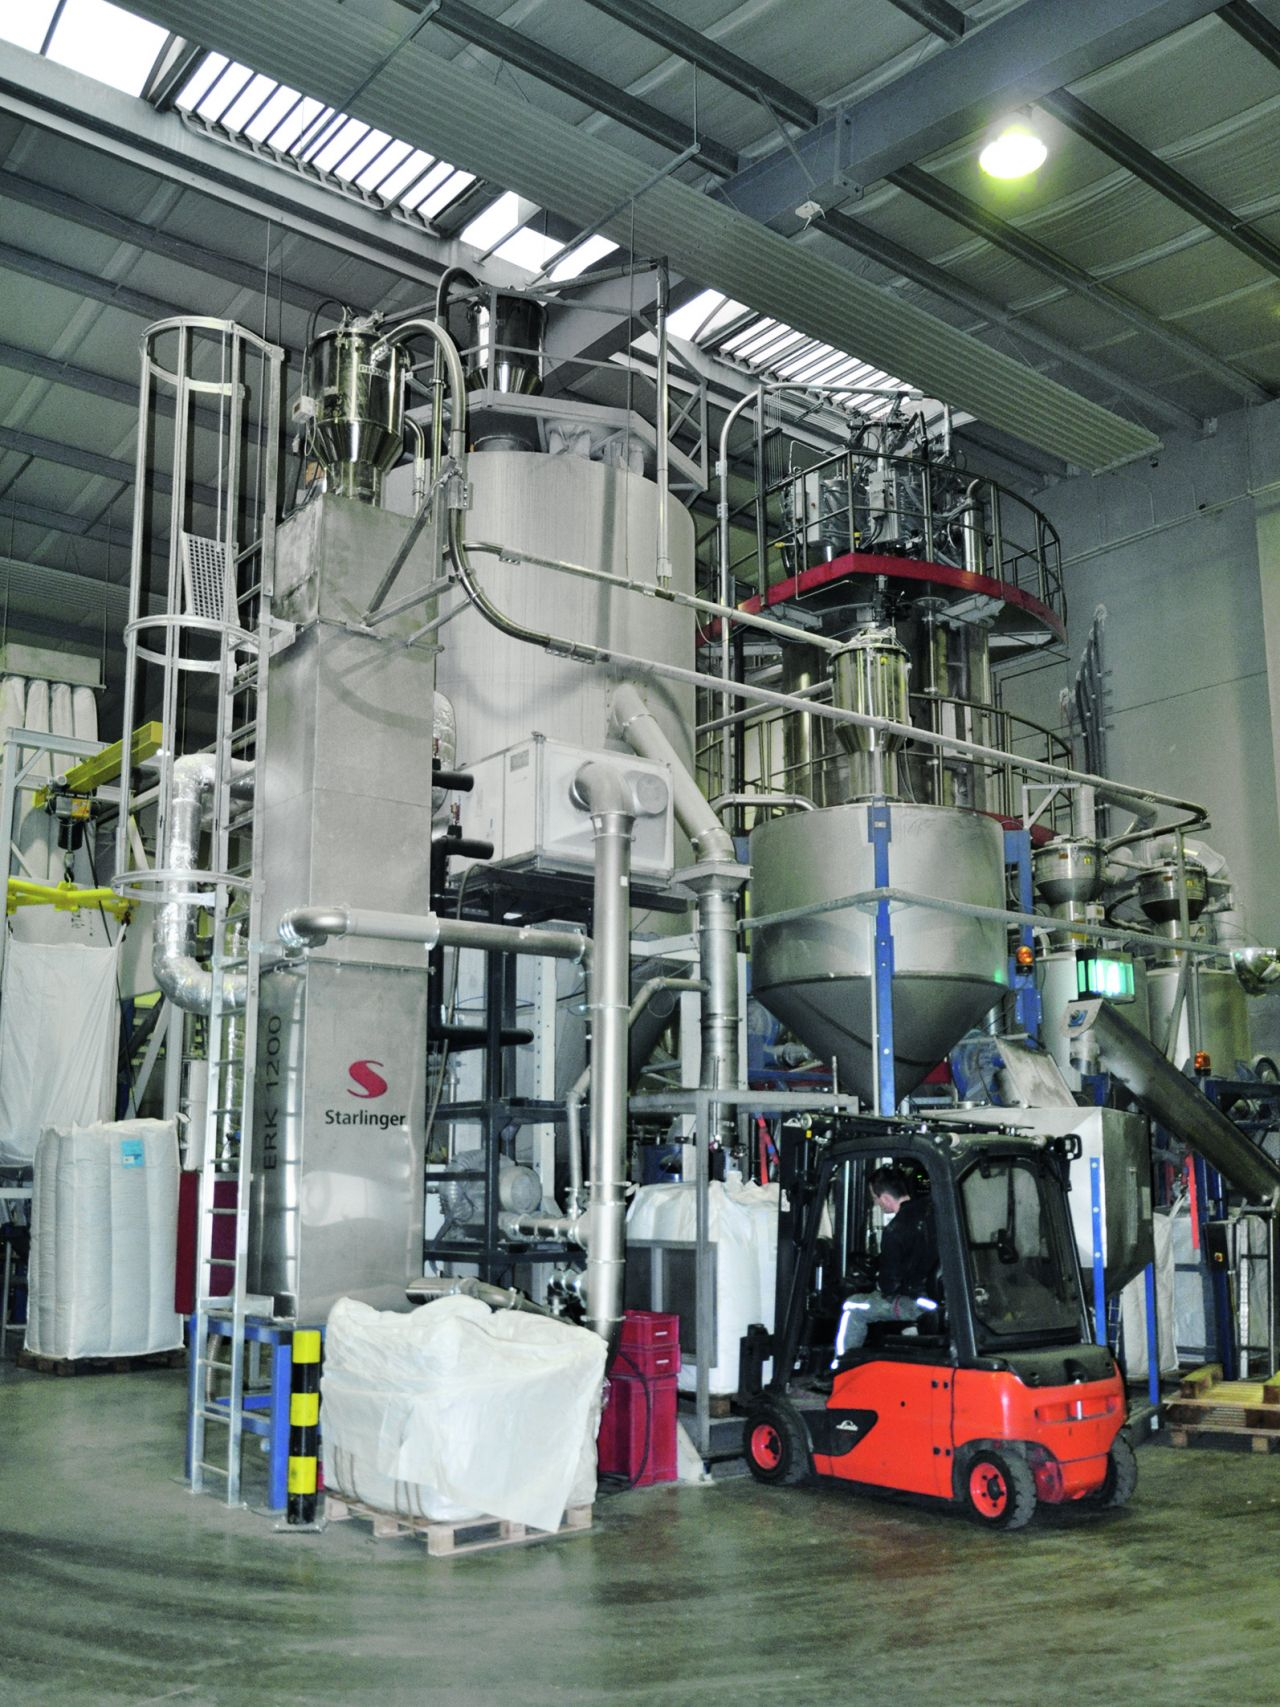 Starlinger Tech Helps PET to PET Boost Bootle Recycling in